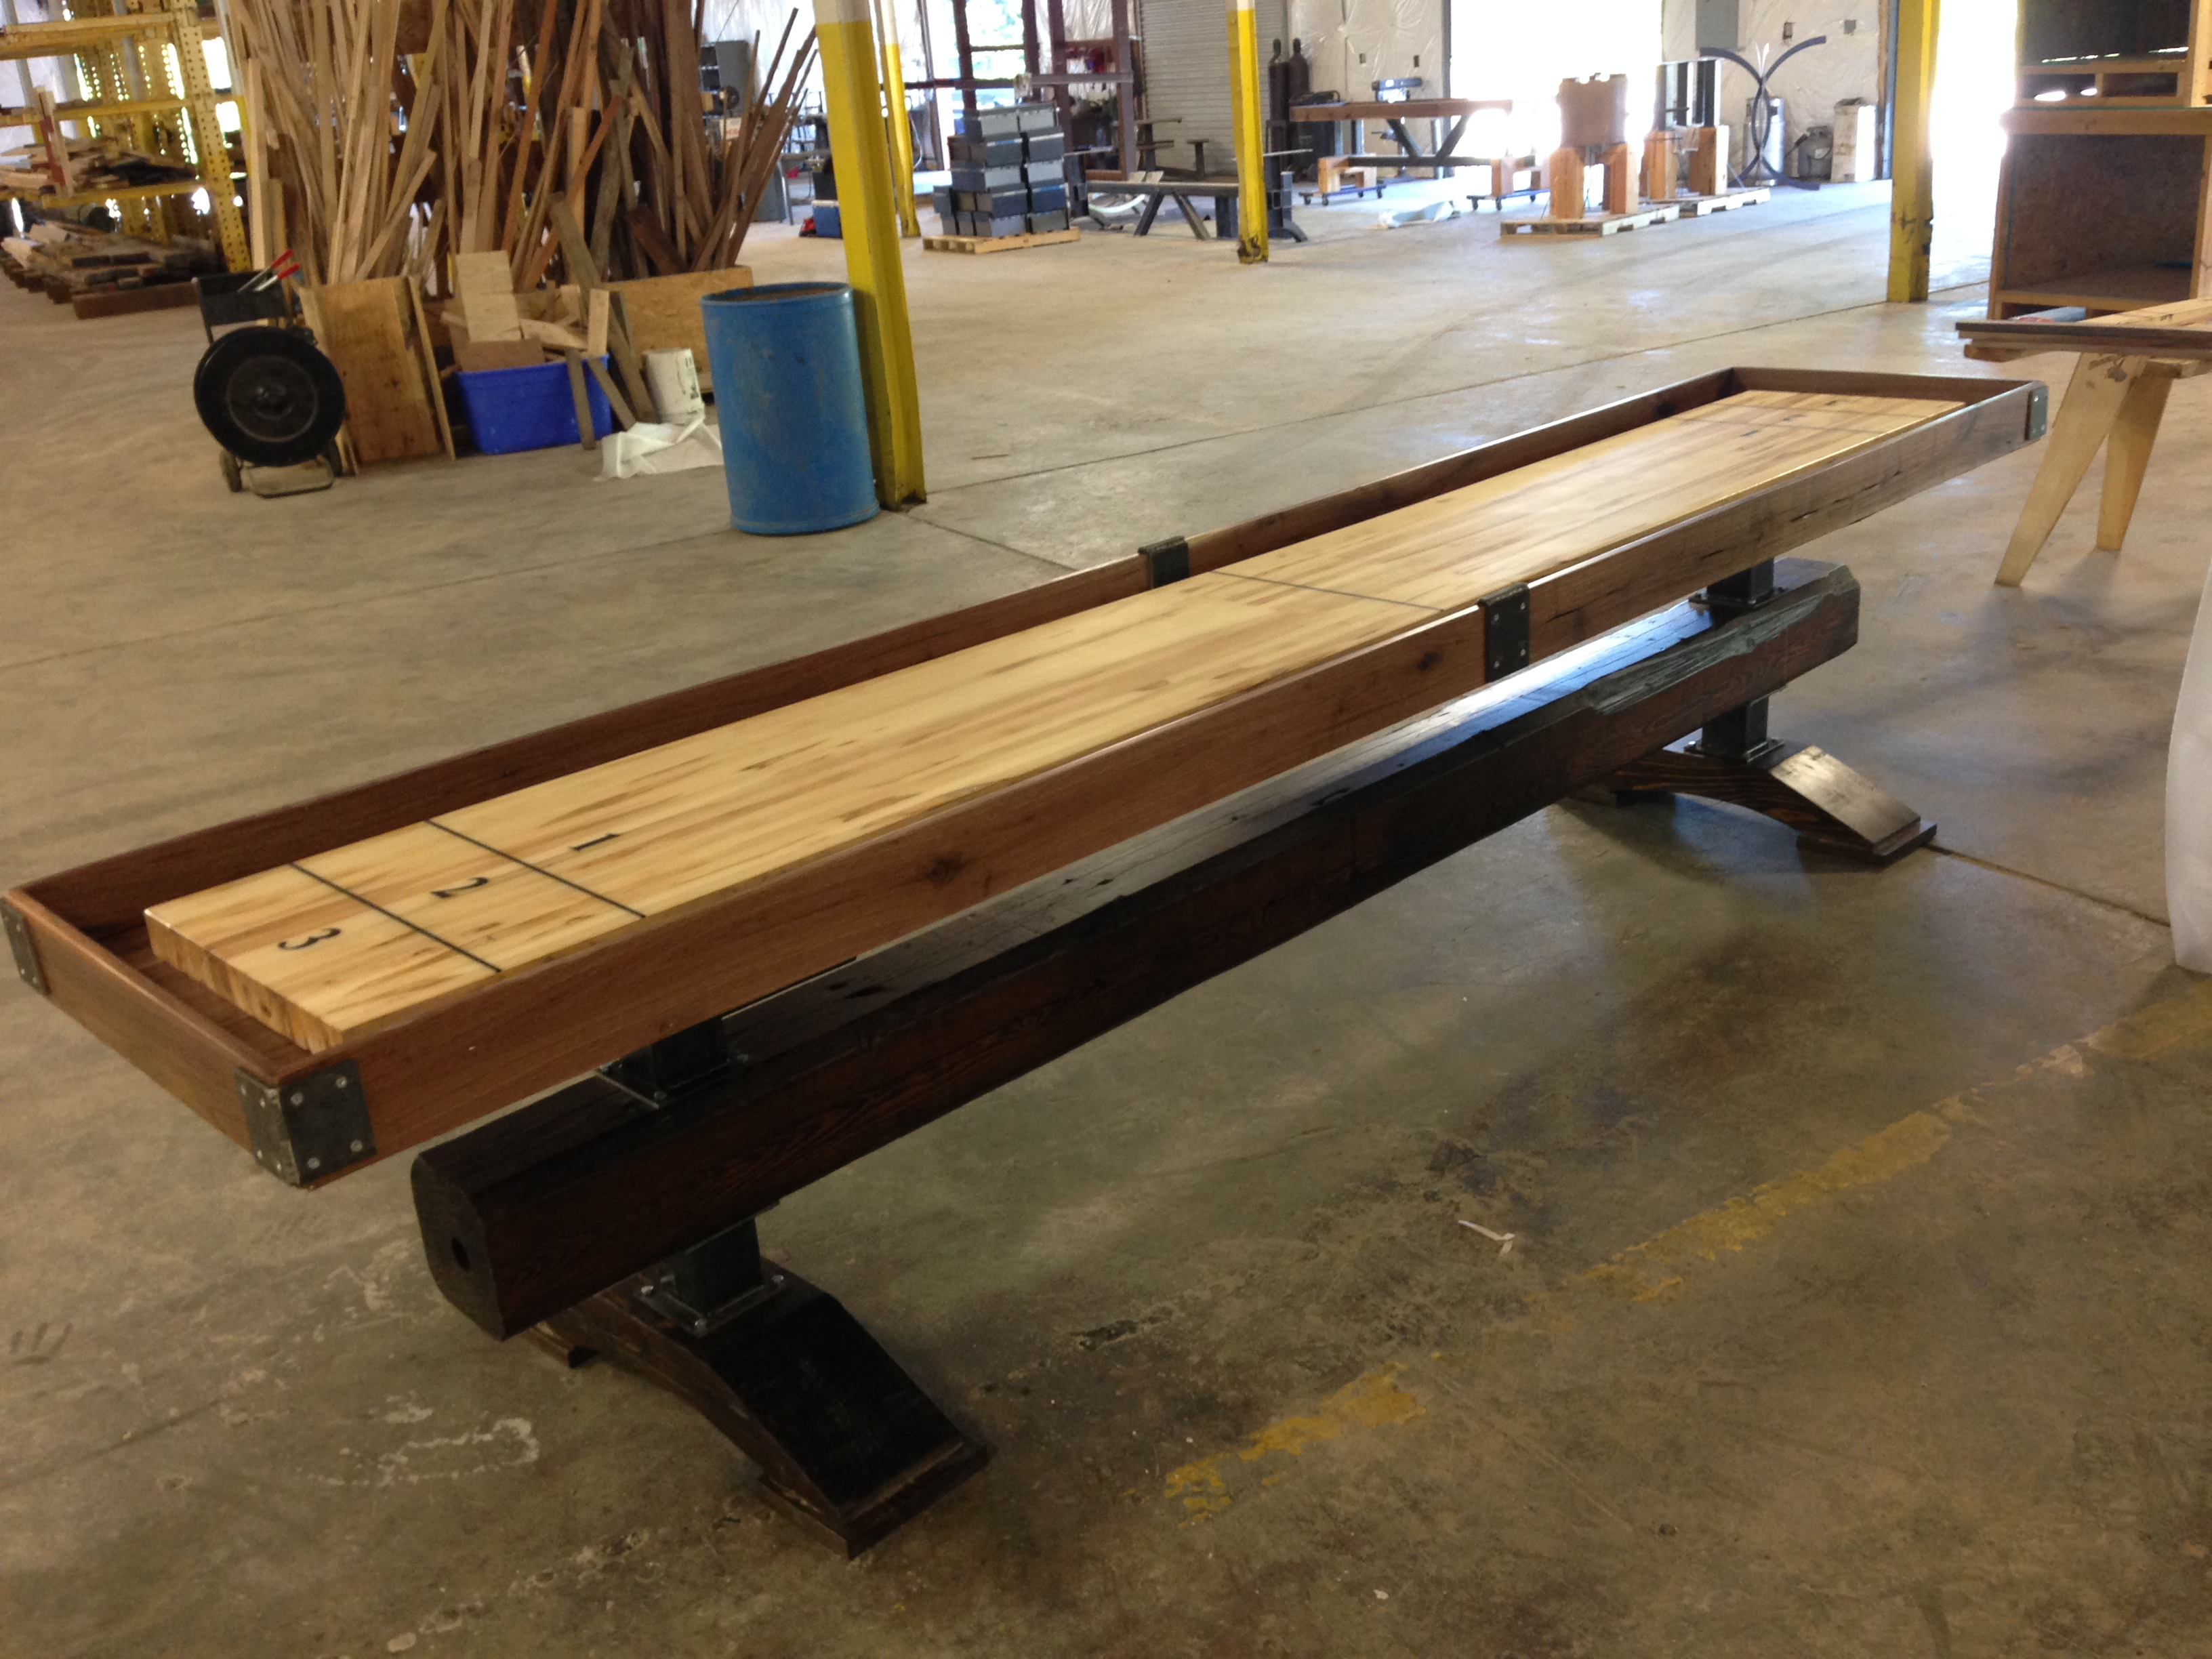 16 Foot Shuffleboard Table | Used Shuffleboards for Sale | Shuffleboard Table